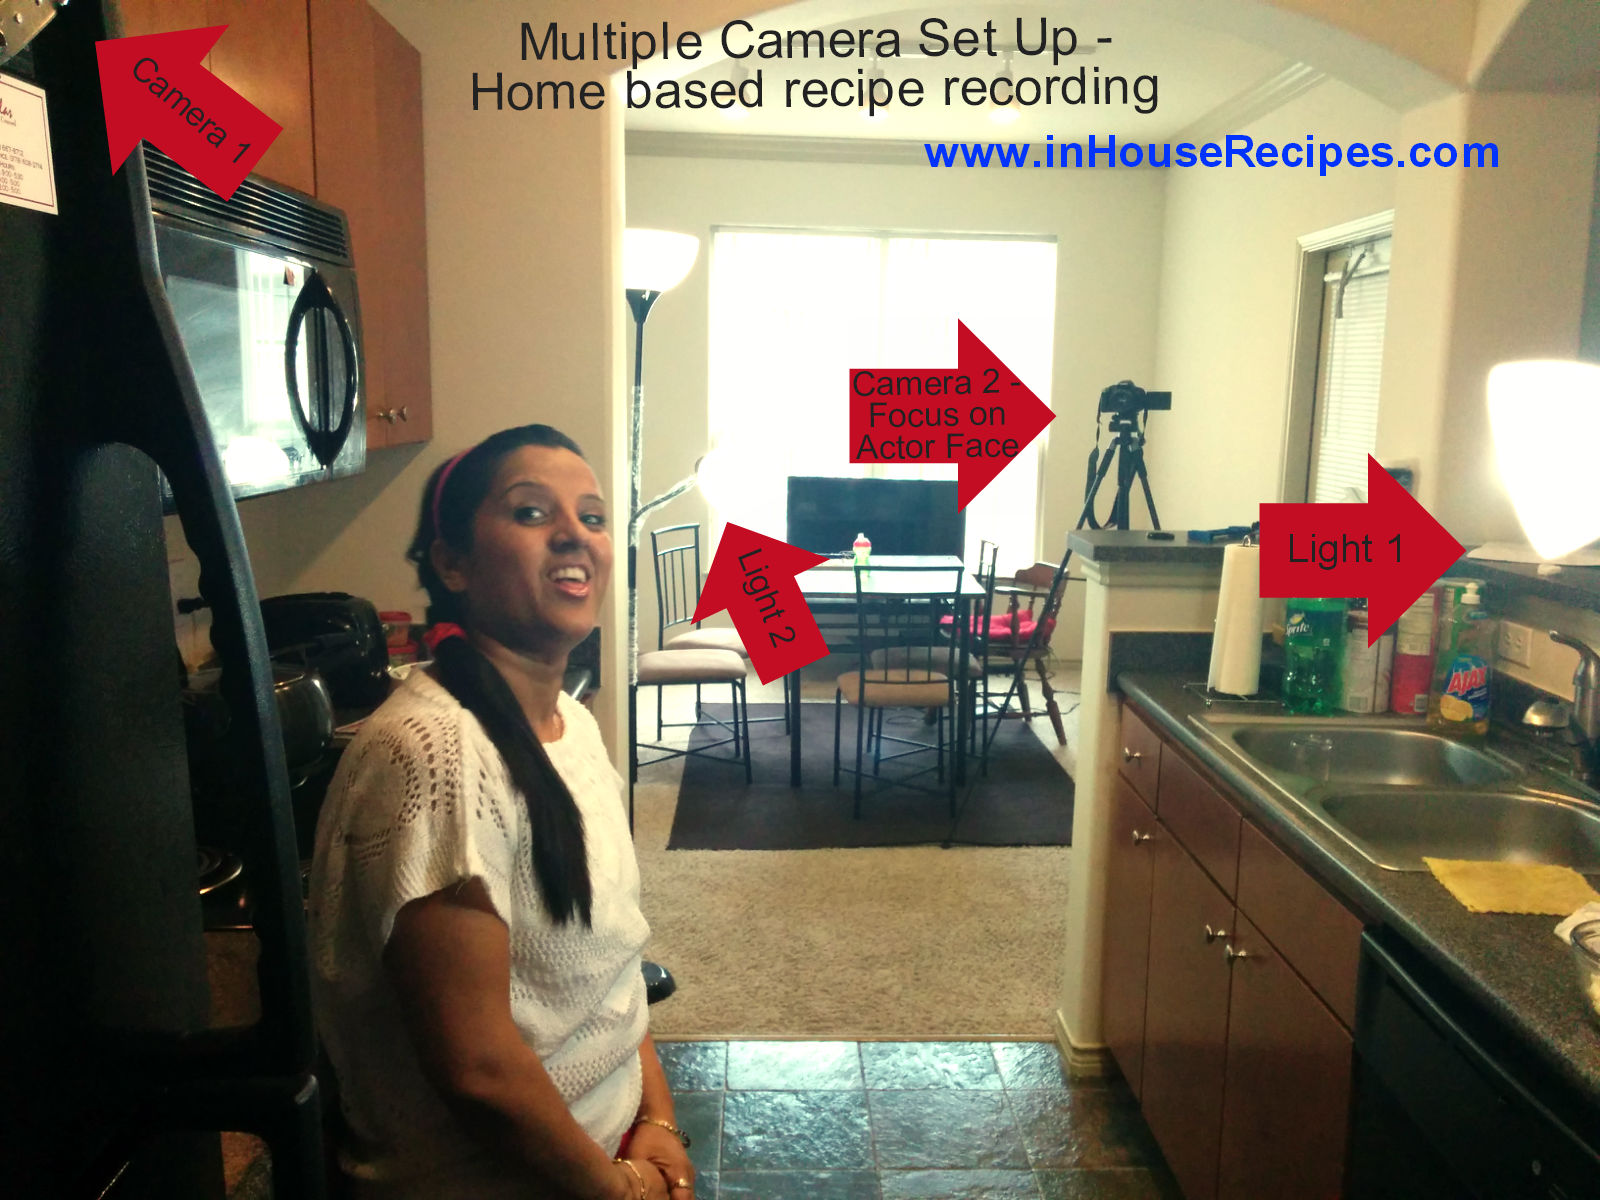 Camera-2 placement for multiple camera home based recipe recording